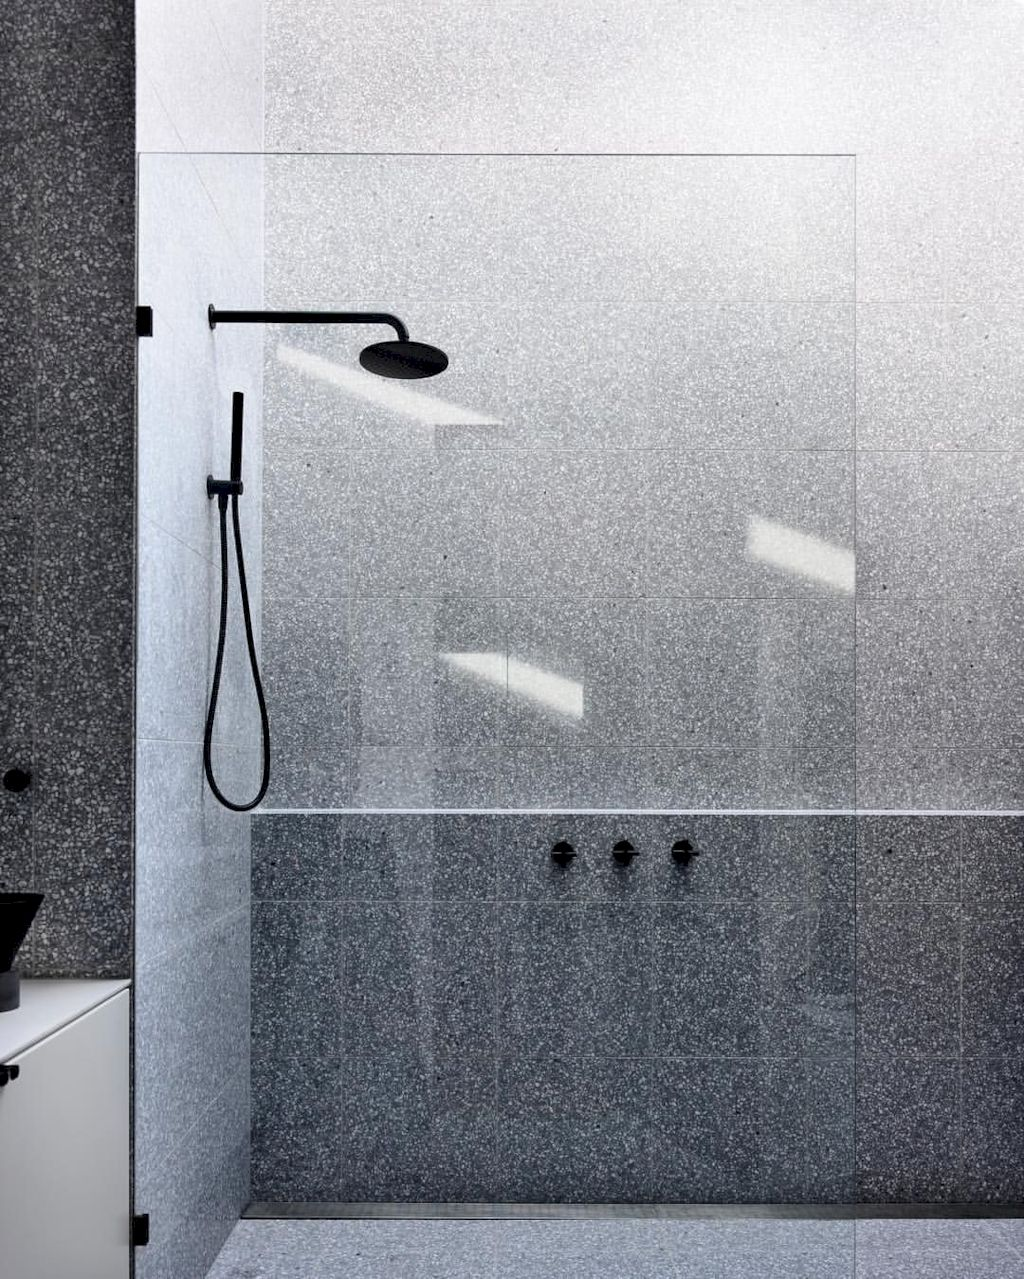 Terrazzo tiles used in bathroom renovation showing classical comeback that bring an artistic retro statement in your home Image 42